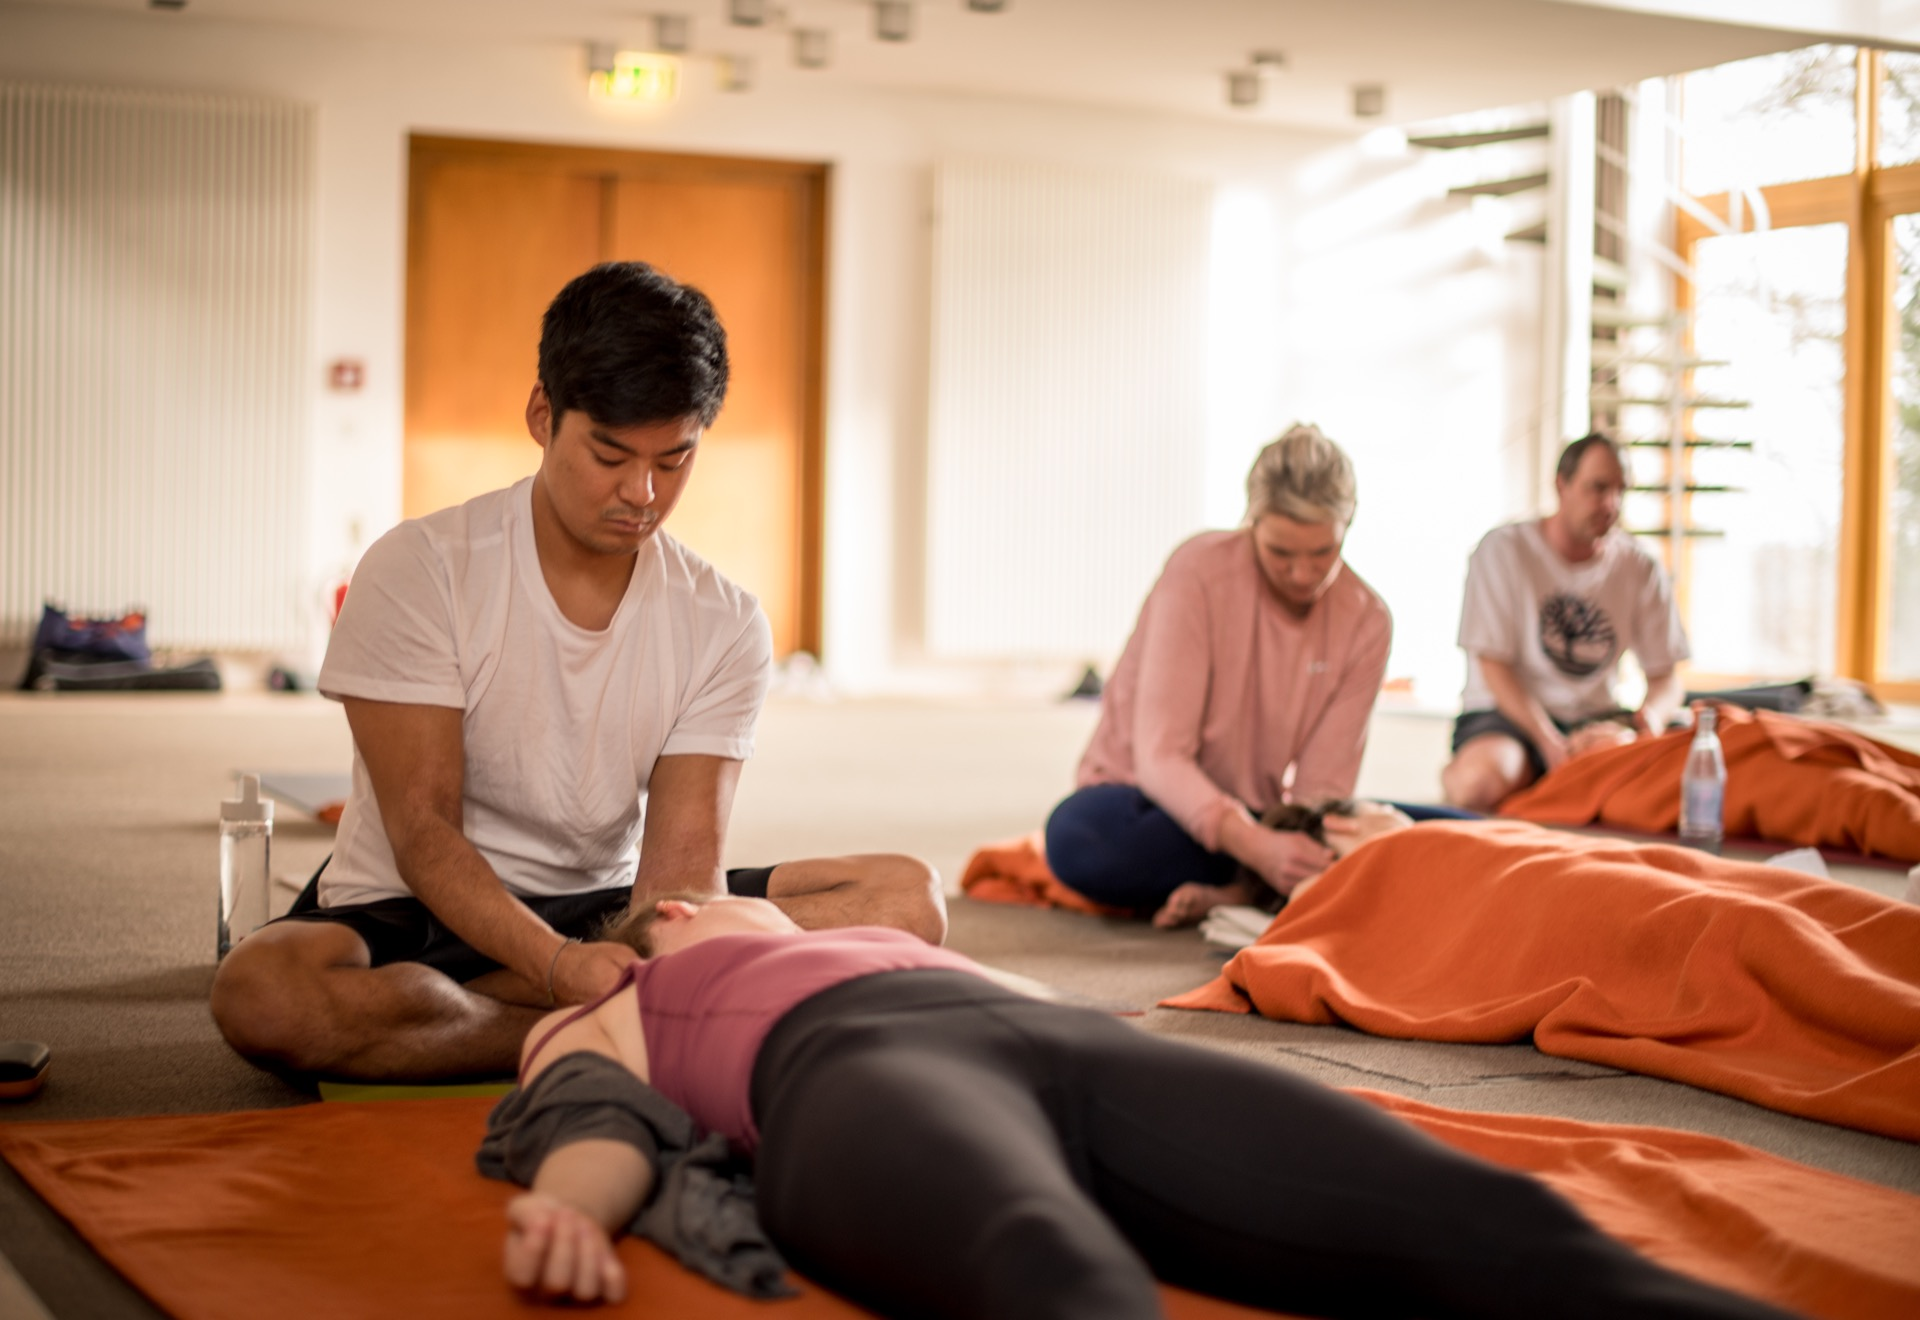 A-New-Beginning-Hie-Kim-Yoga-Retreat-Alina-Matis-Photography-079 - Hie Kim Yoga - Yoga Retreat - Yoga Workshops und Reisen